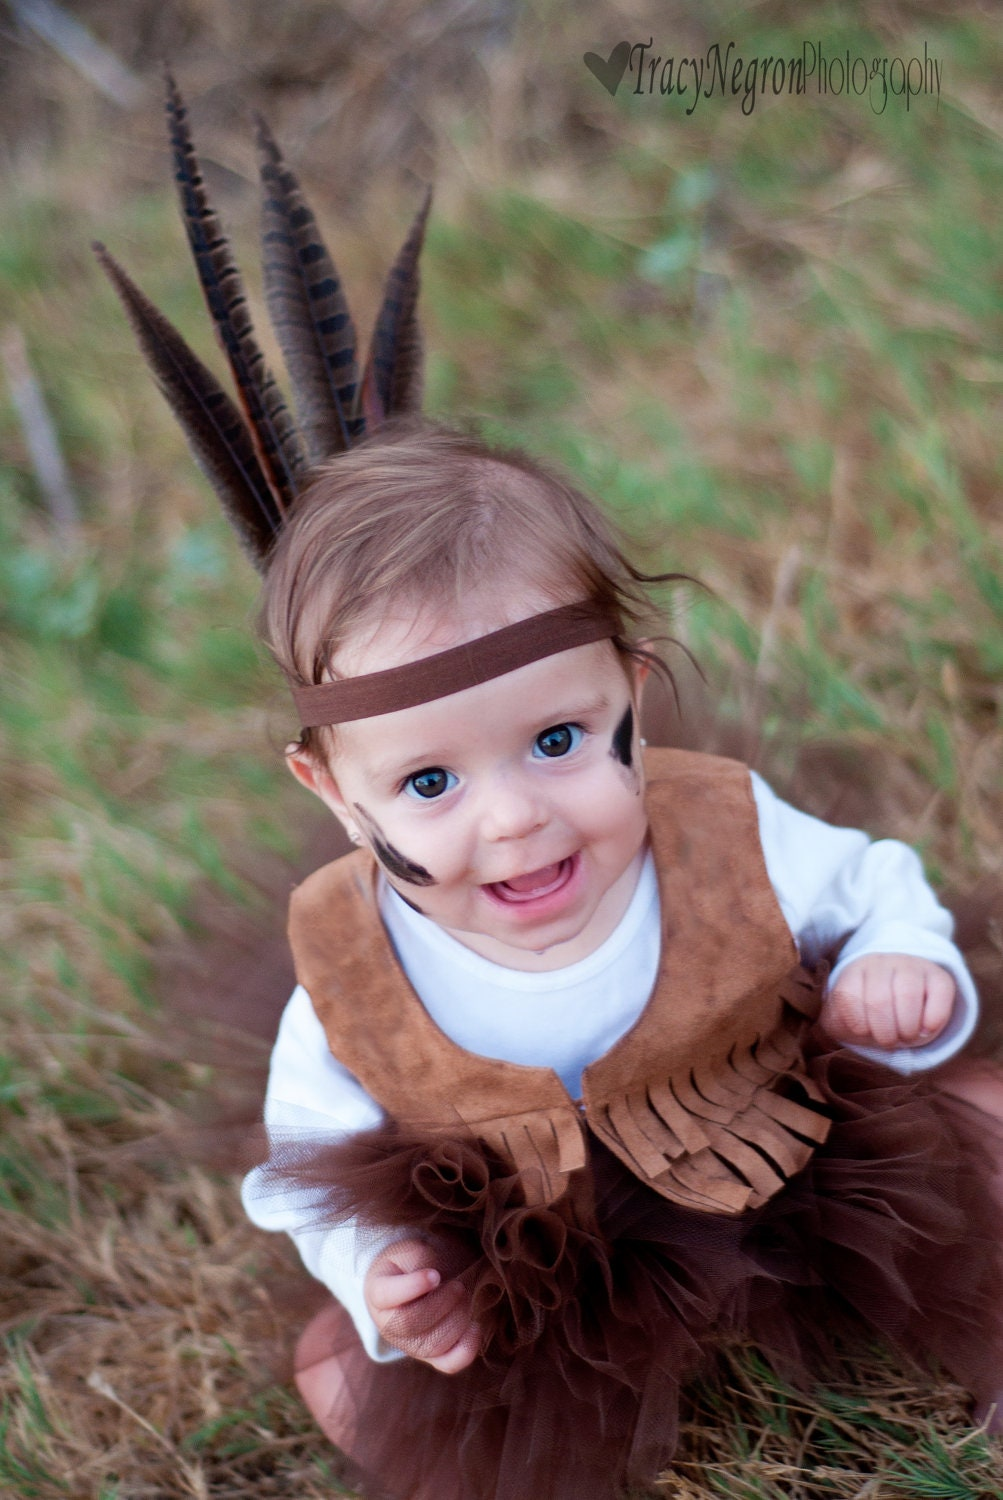 Indian headband,pocahontas, peterpan headband,Indian headress, feather headband, indian costume,,brown headband,any size,photo prop